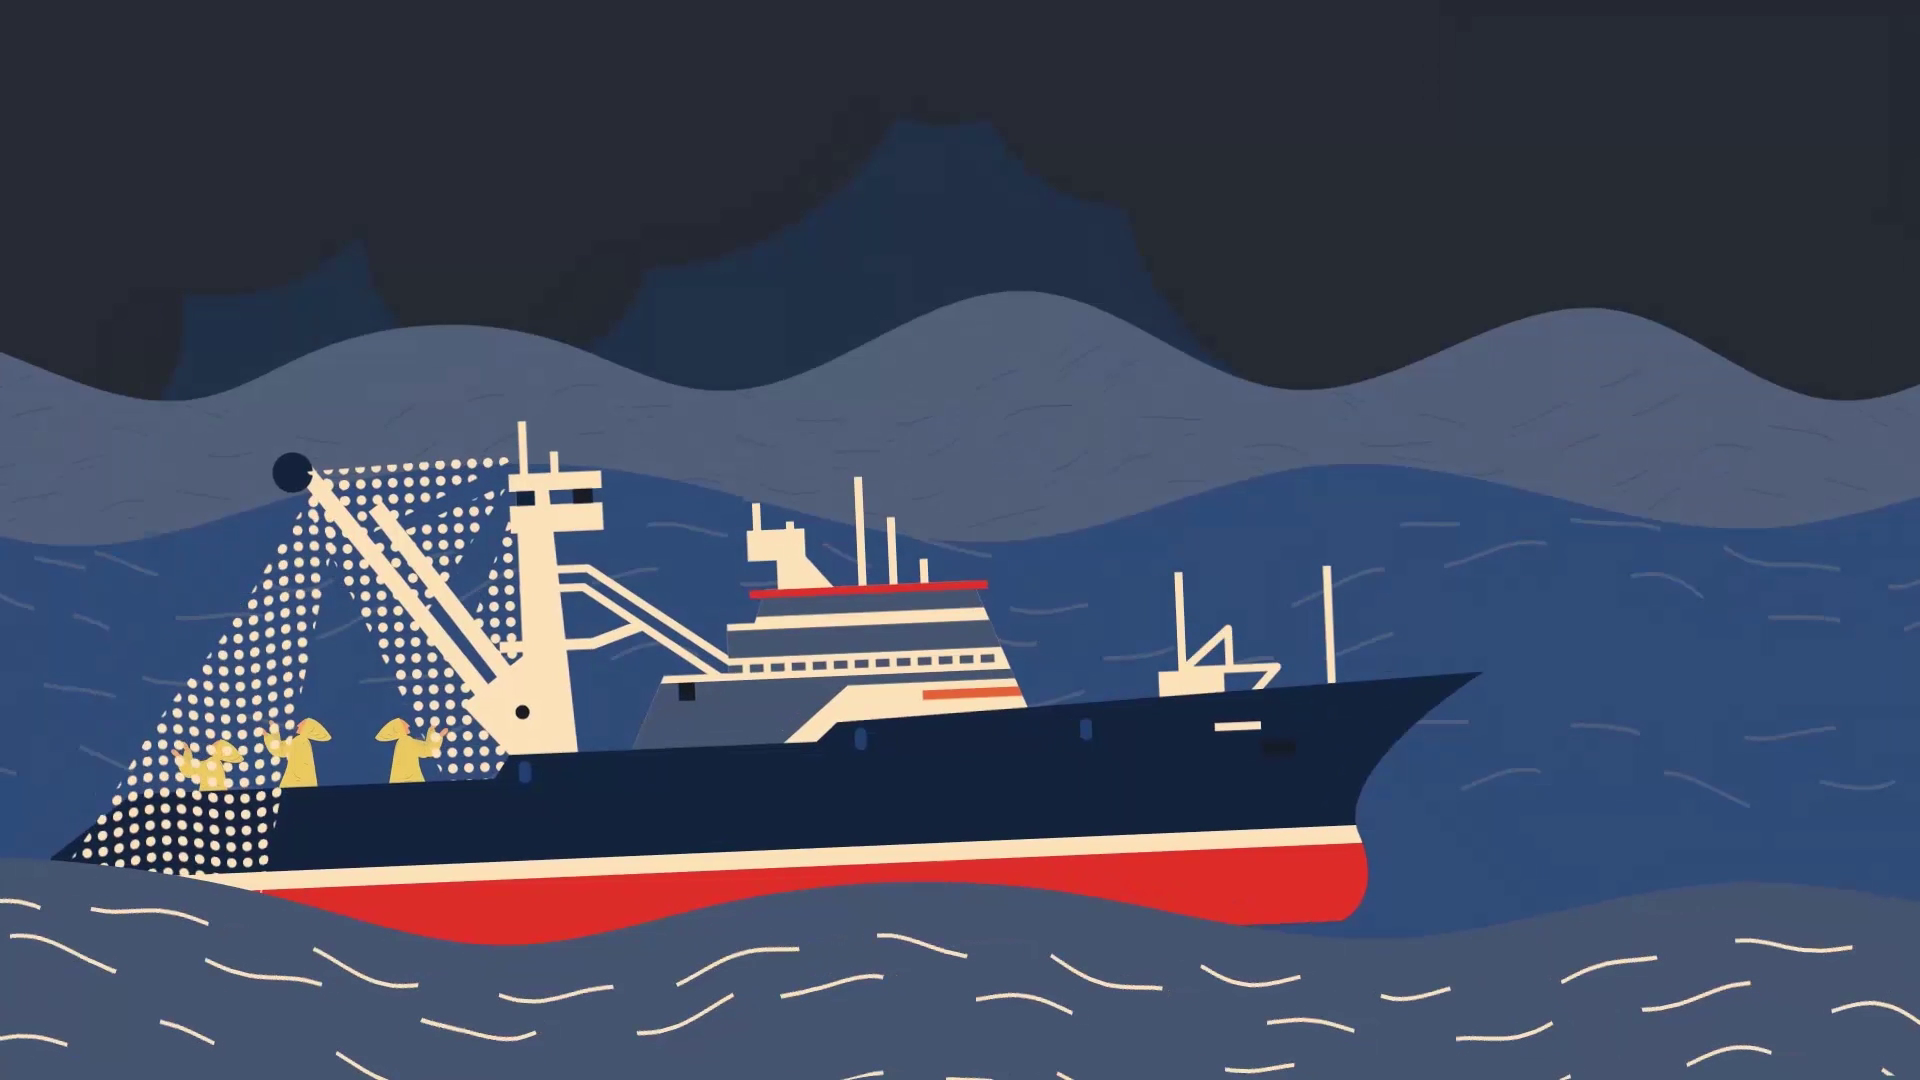 Ship in the sea - Darvideo animation